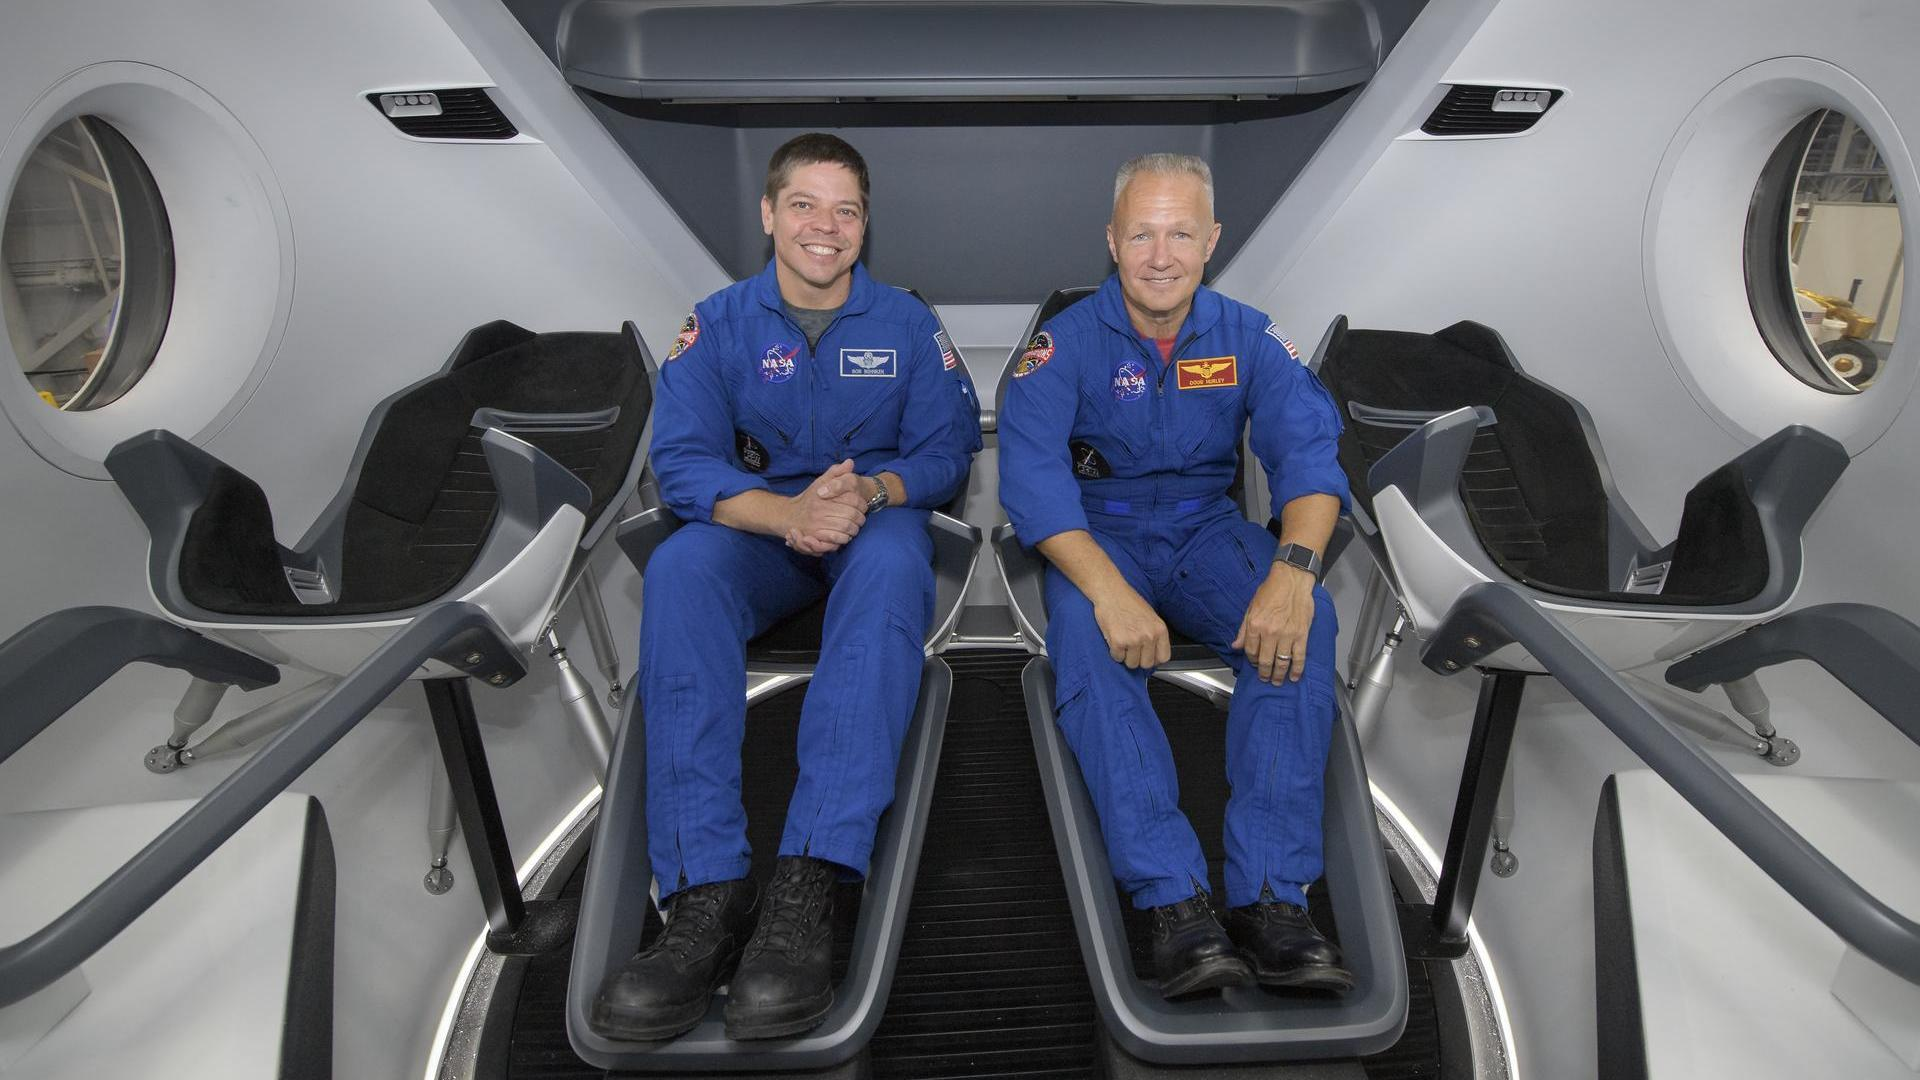 NASA Astronauts will enter quarantine mode ahead of SpaceX's first crewed mission